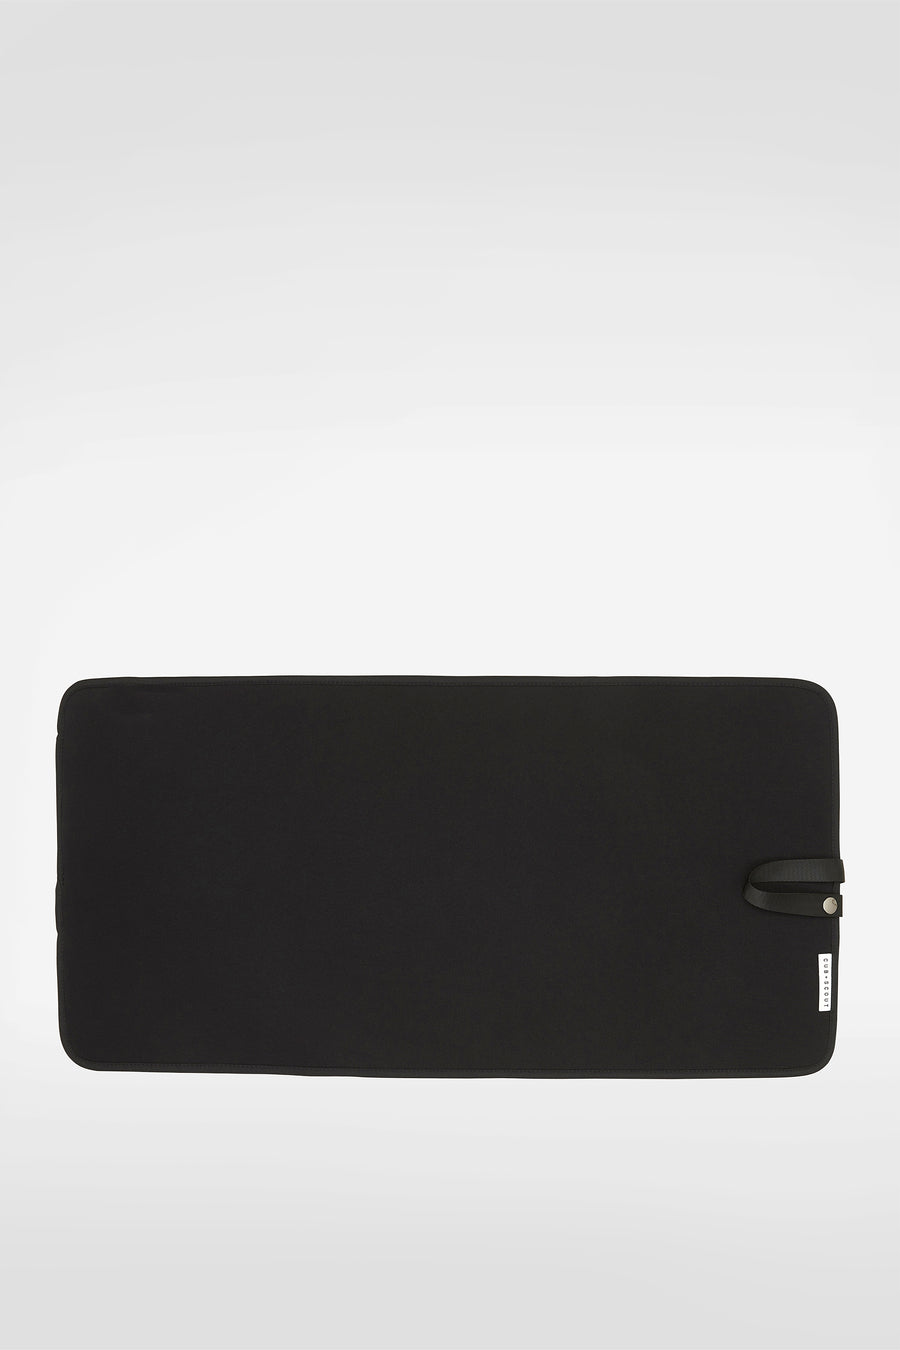 CS Mat - Black